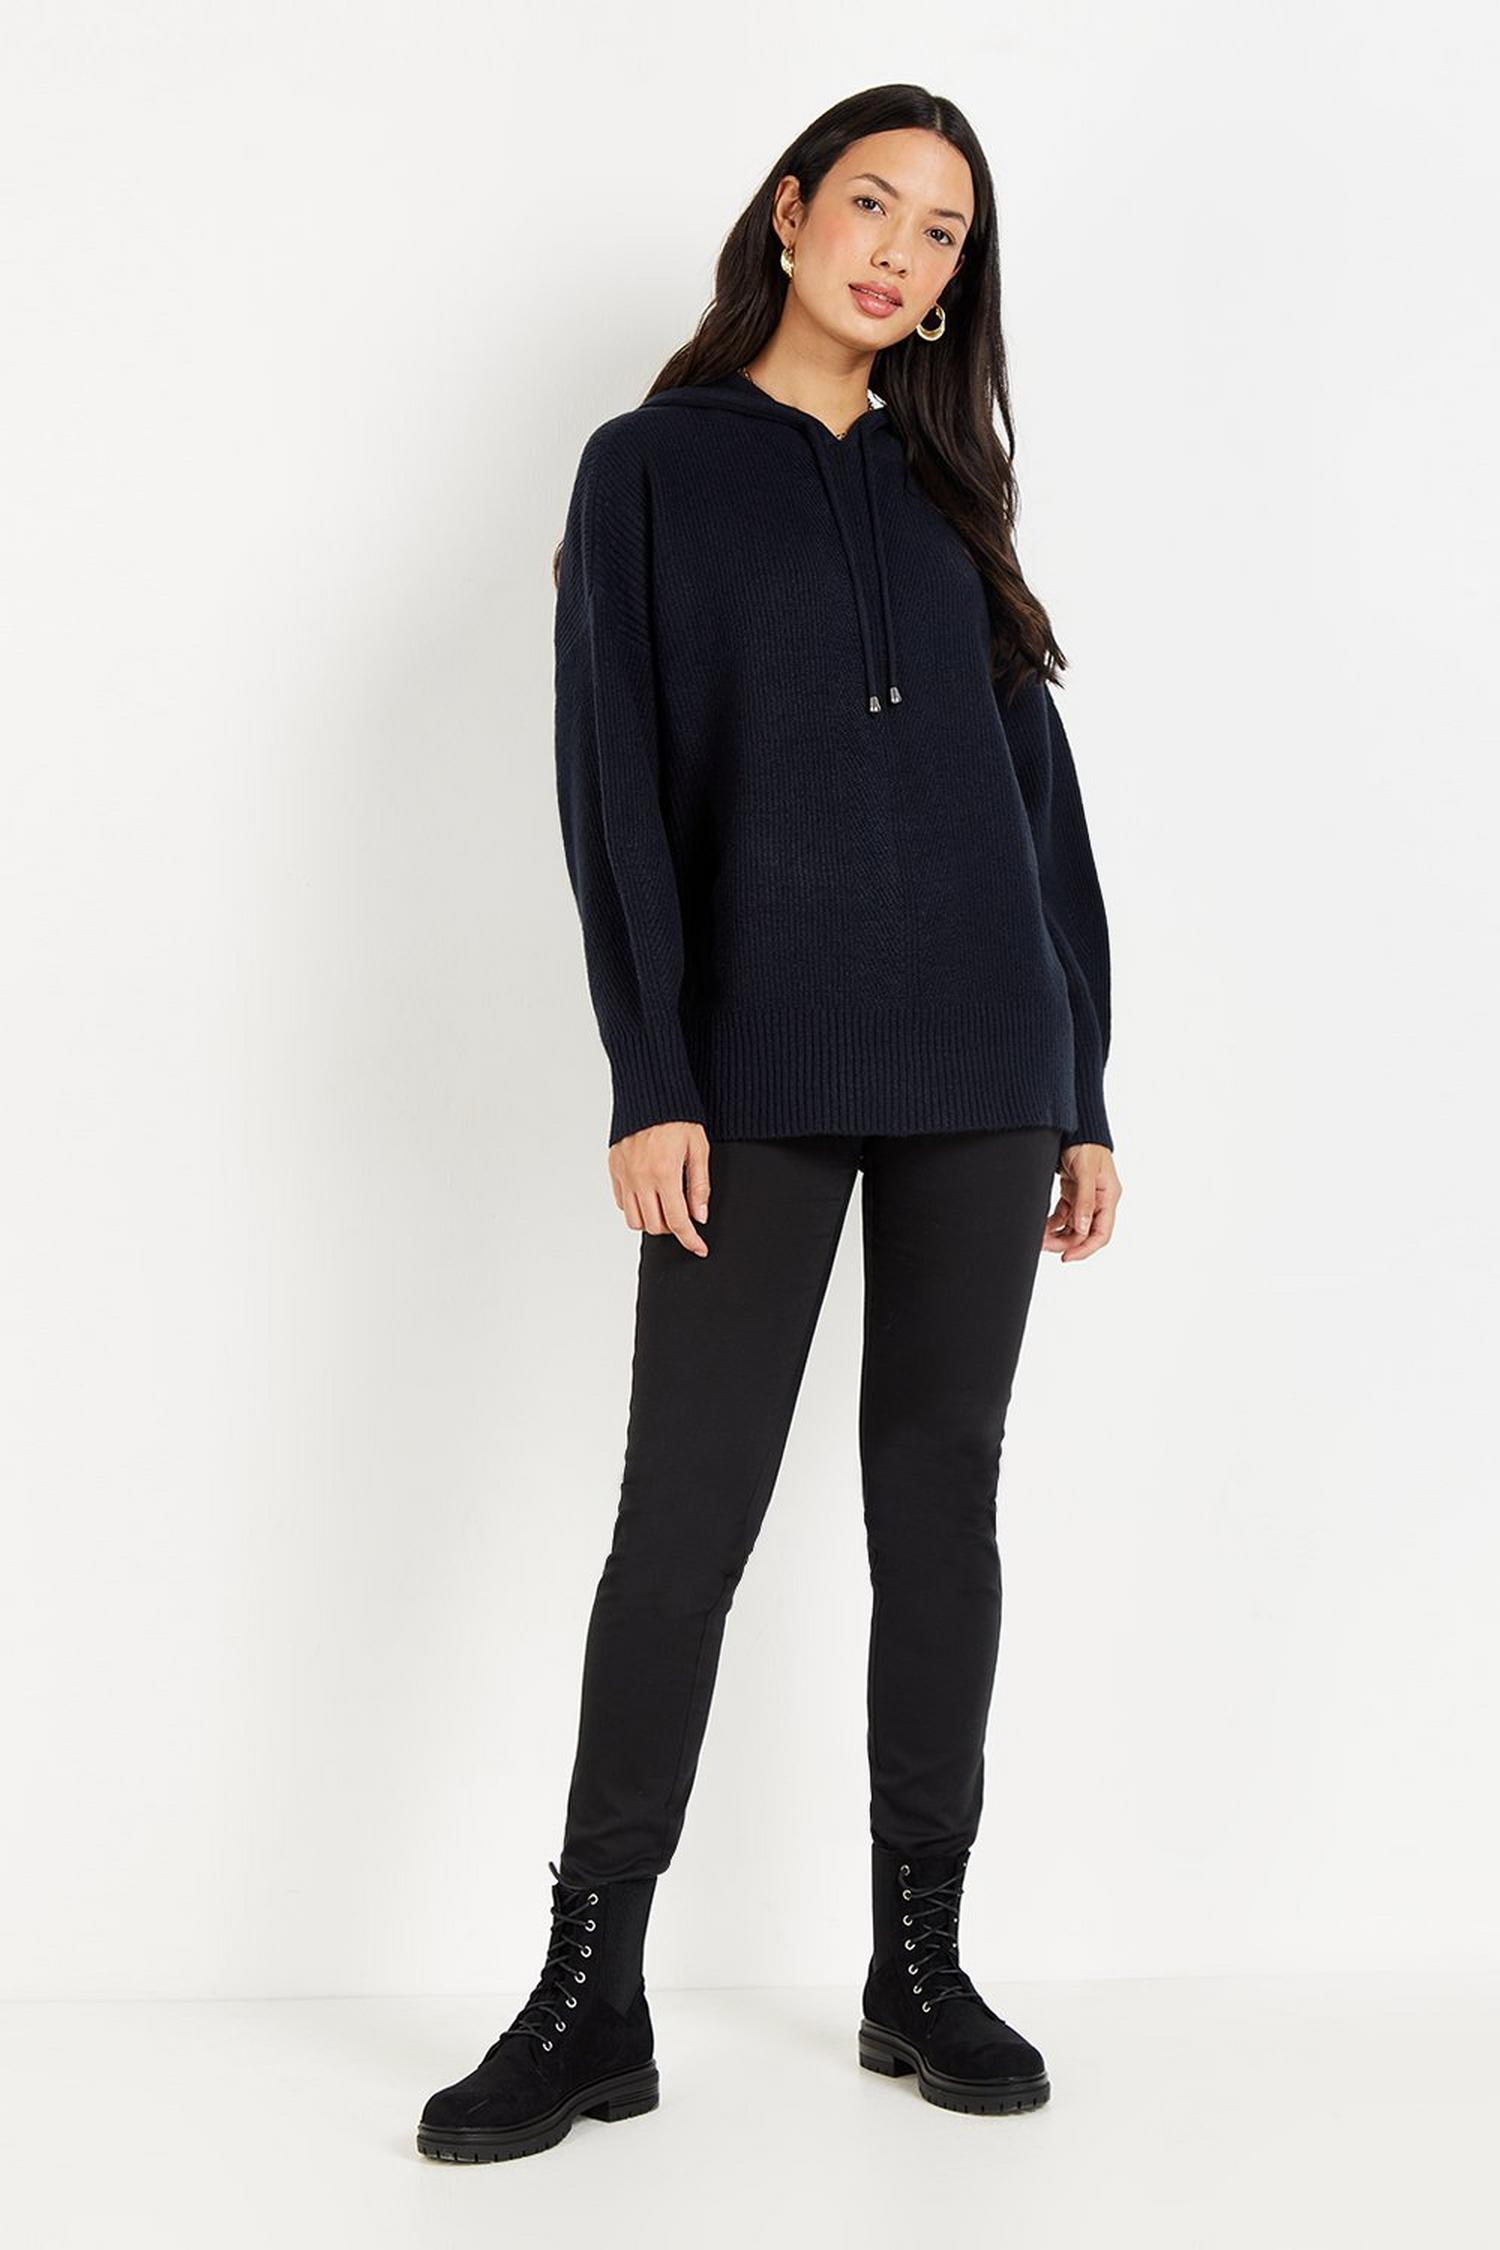 148 Navy Knitted Hoodie Jumper image number 1